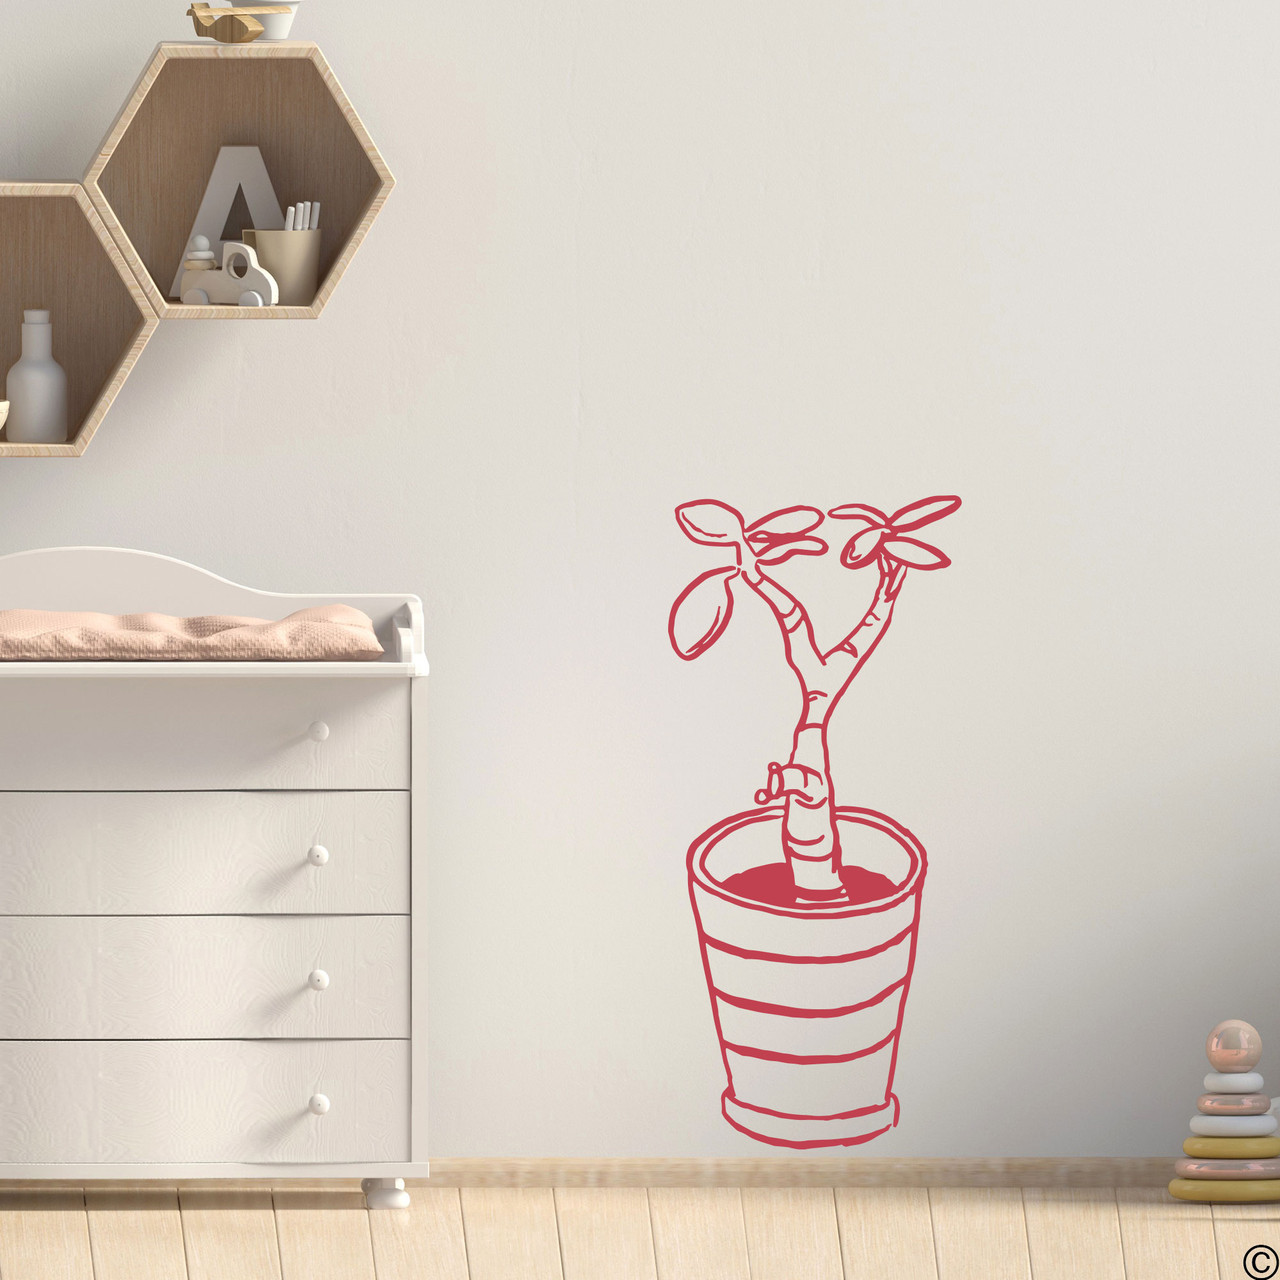 The hand drawn baby jade potted plant wall decal in the dahlia red vinyl color.